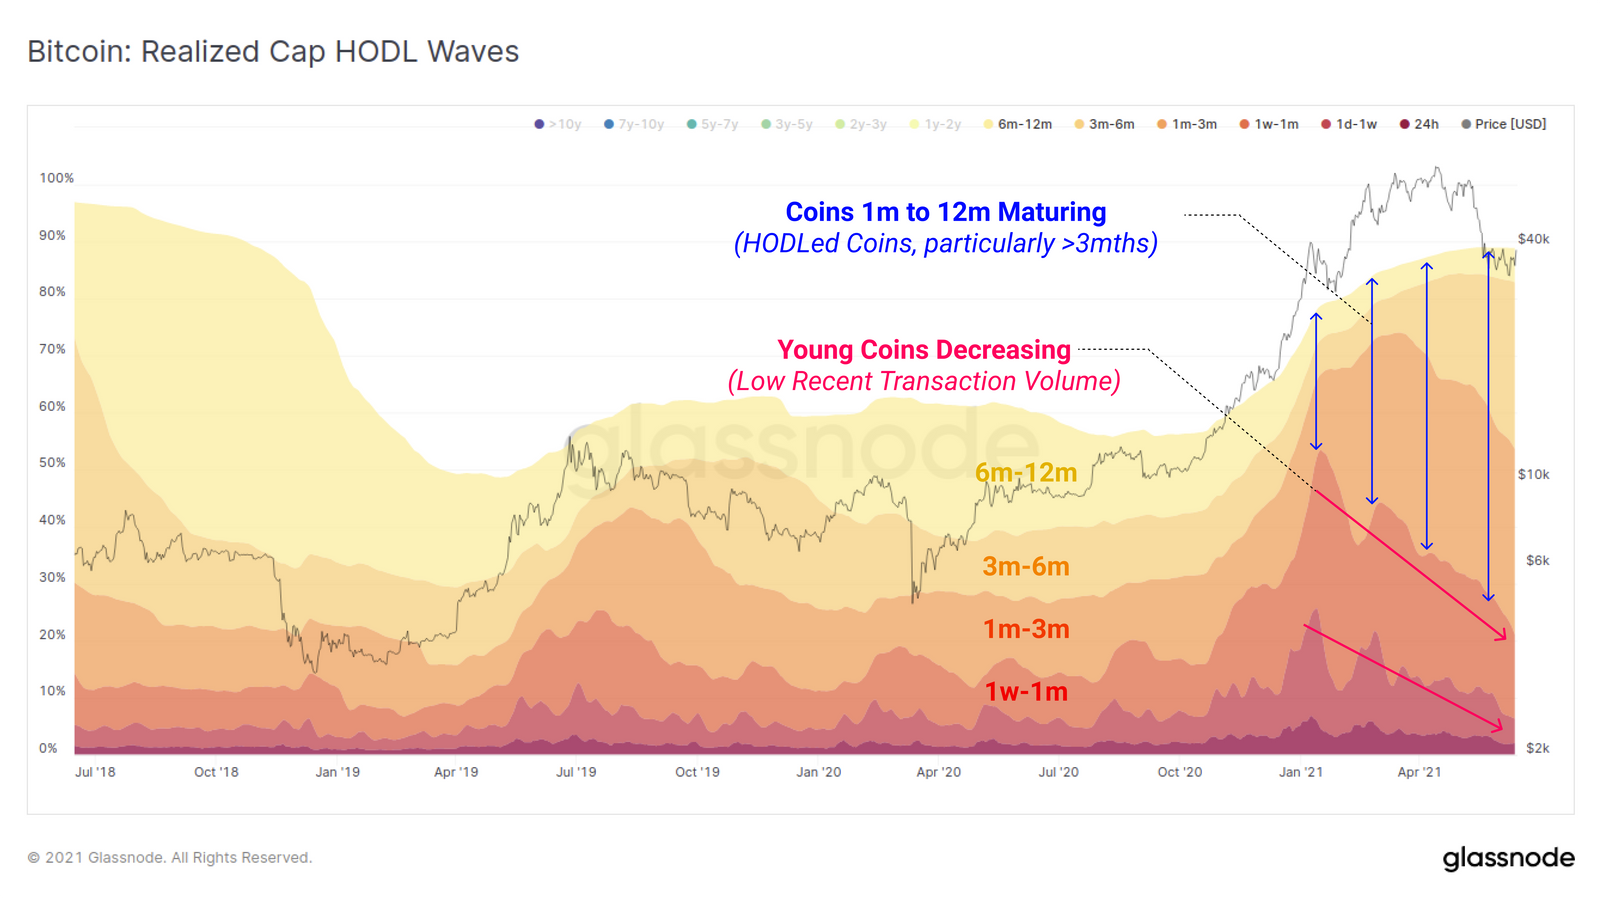 New Bitcoin bull market hodlers are refusing to sell at K, data suggests